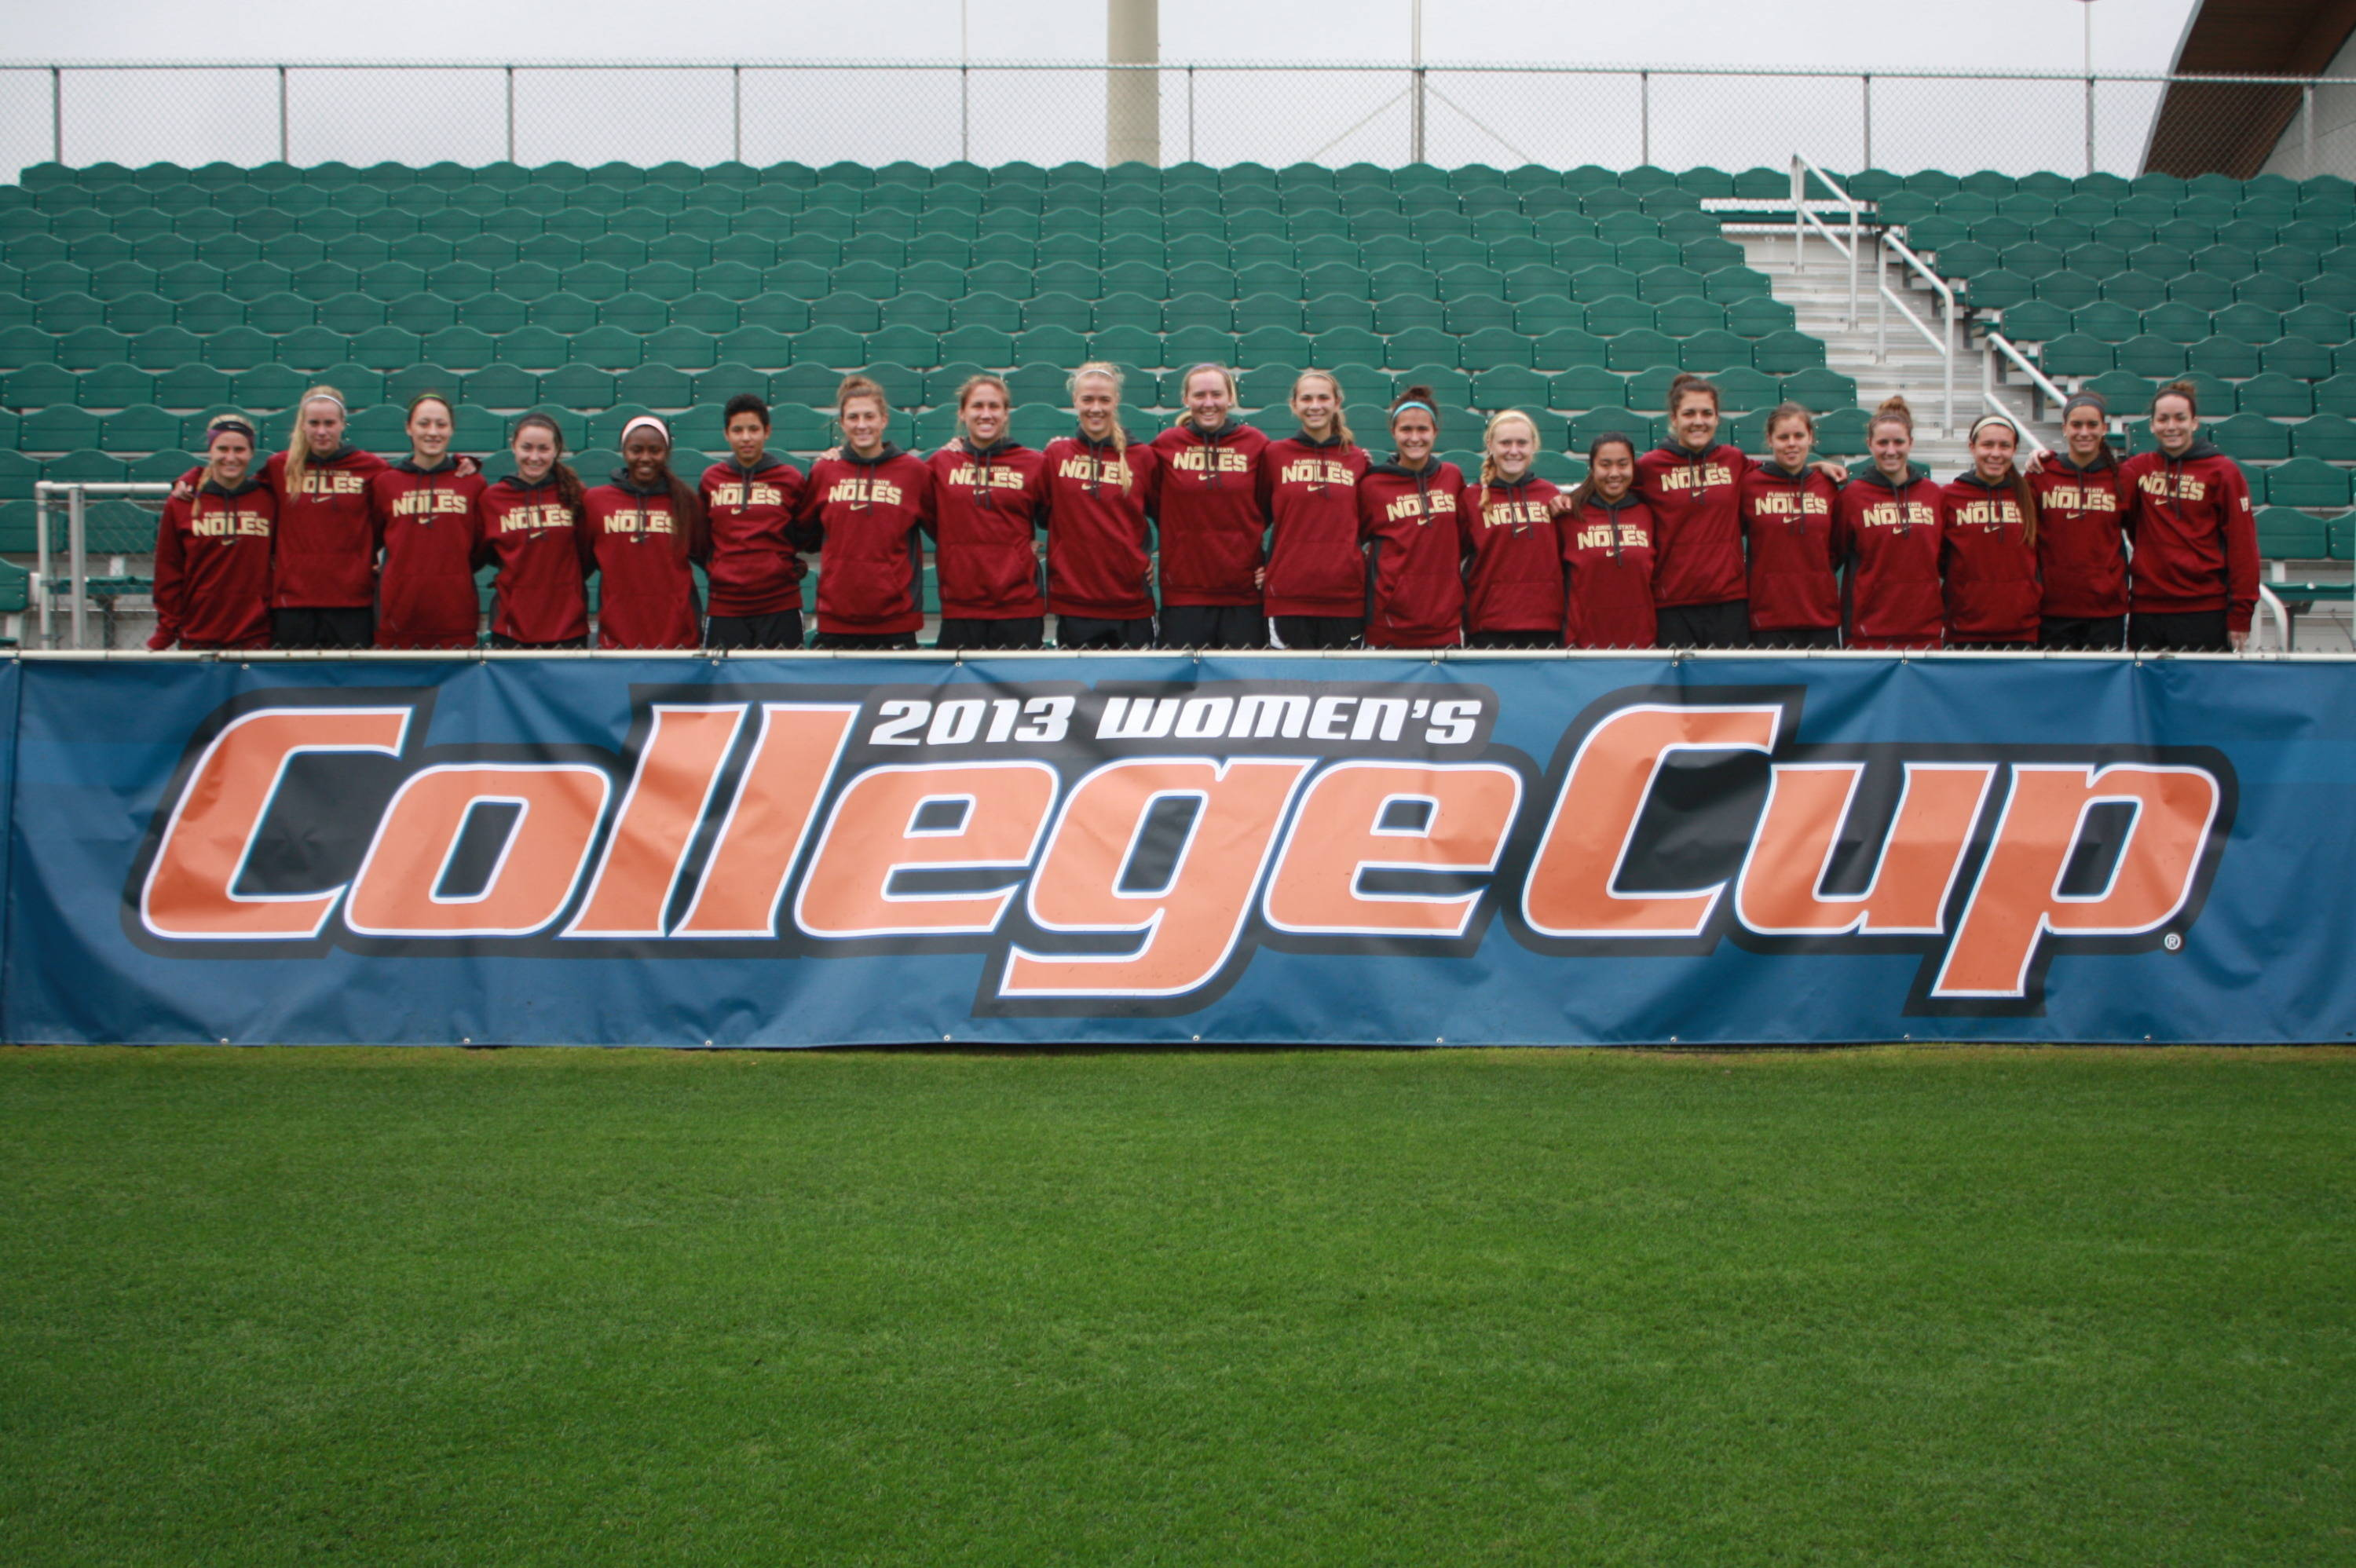 Florida State at the 2013 College Cup